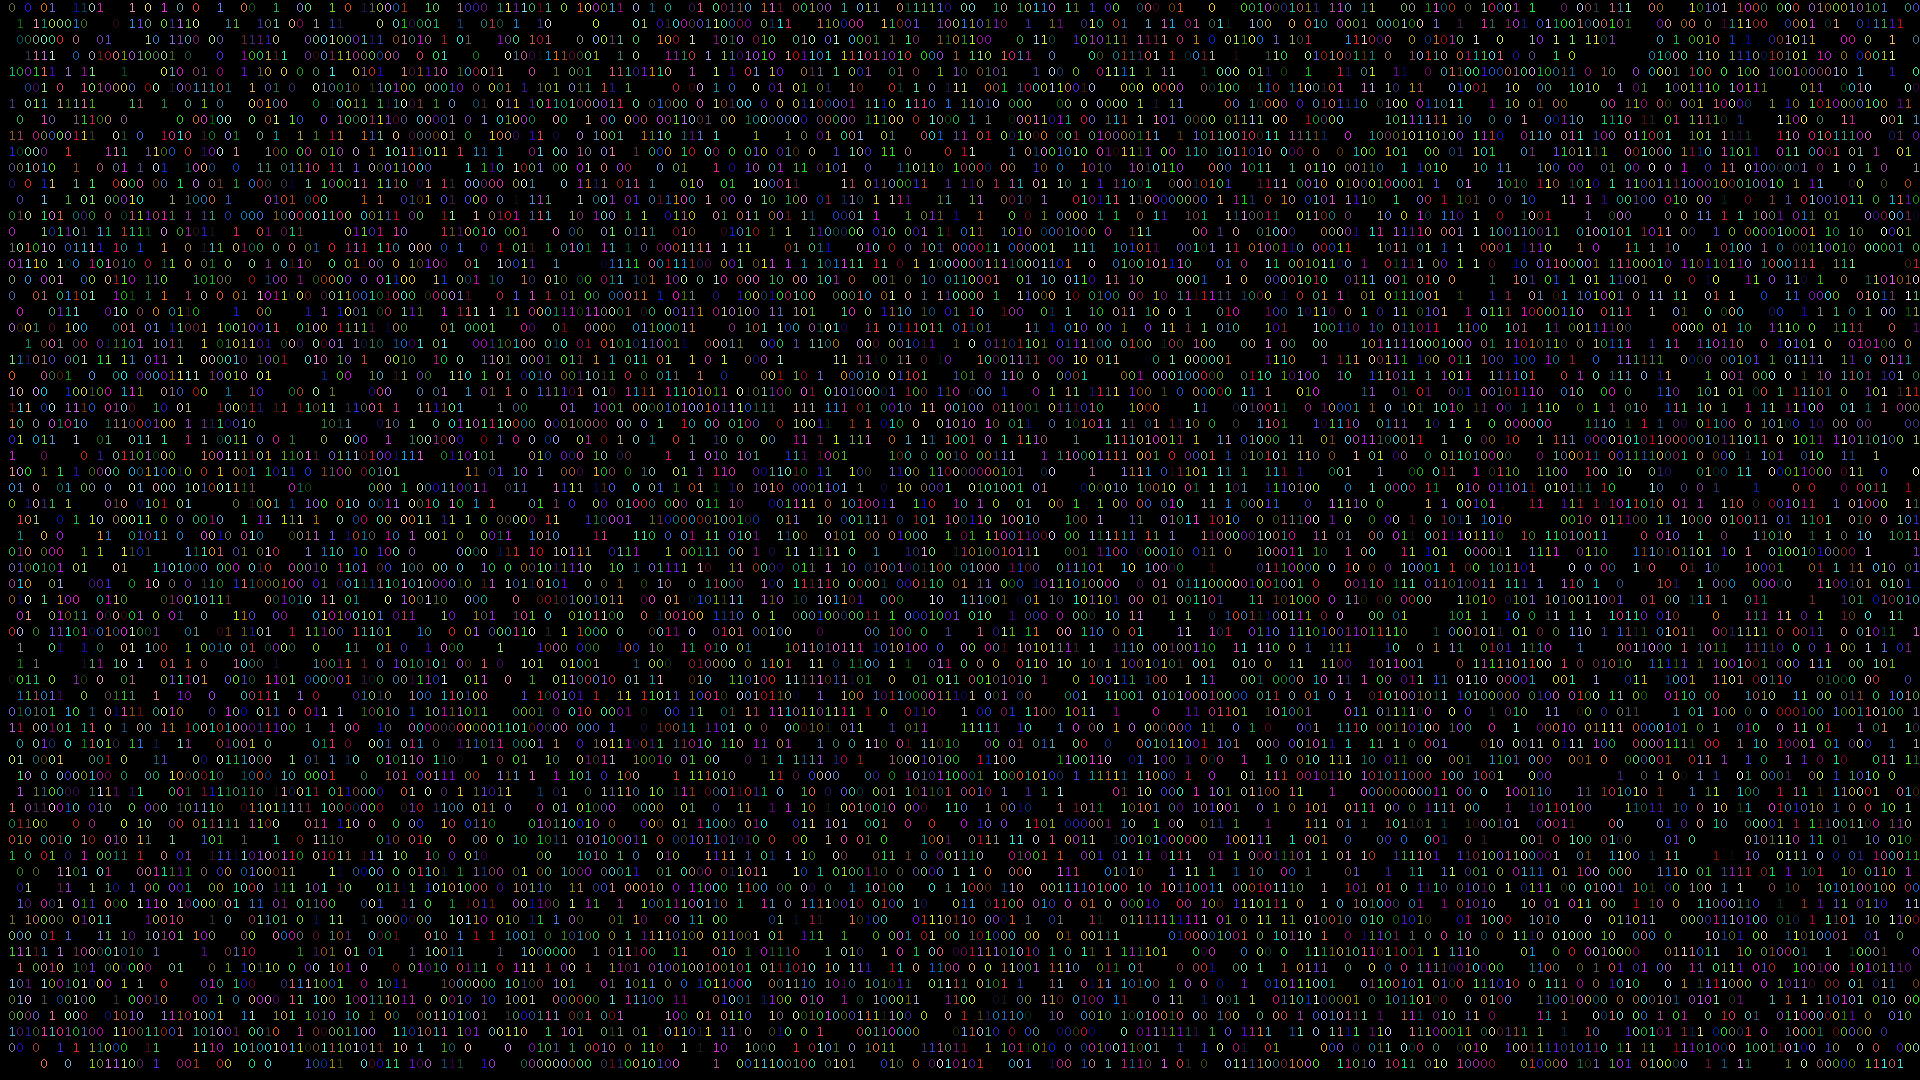 Hacking Code Wallpaper Quote Numbers Danger Binary White Background